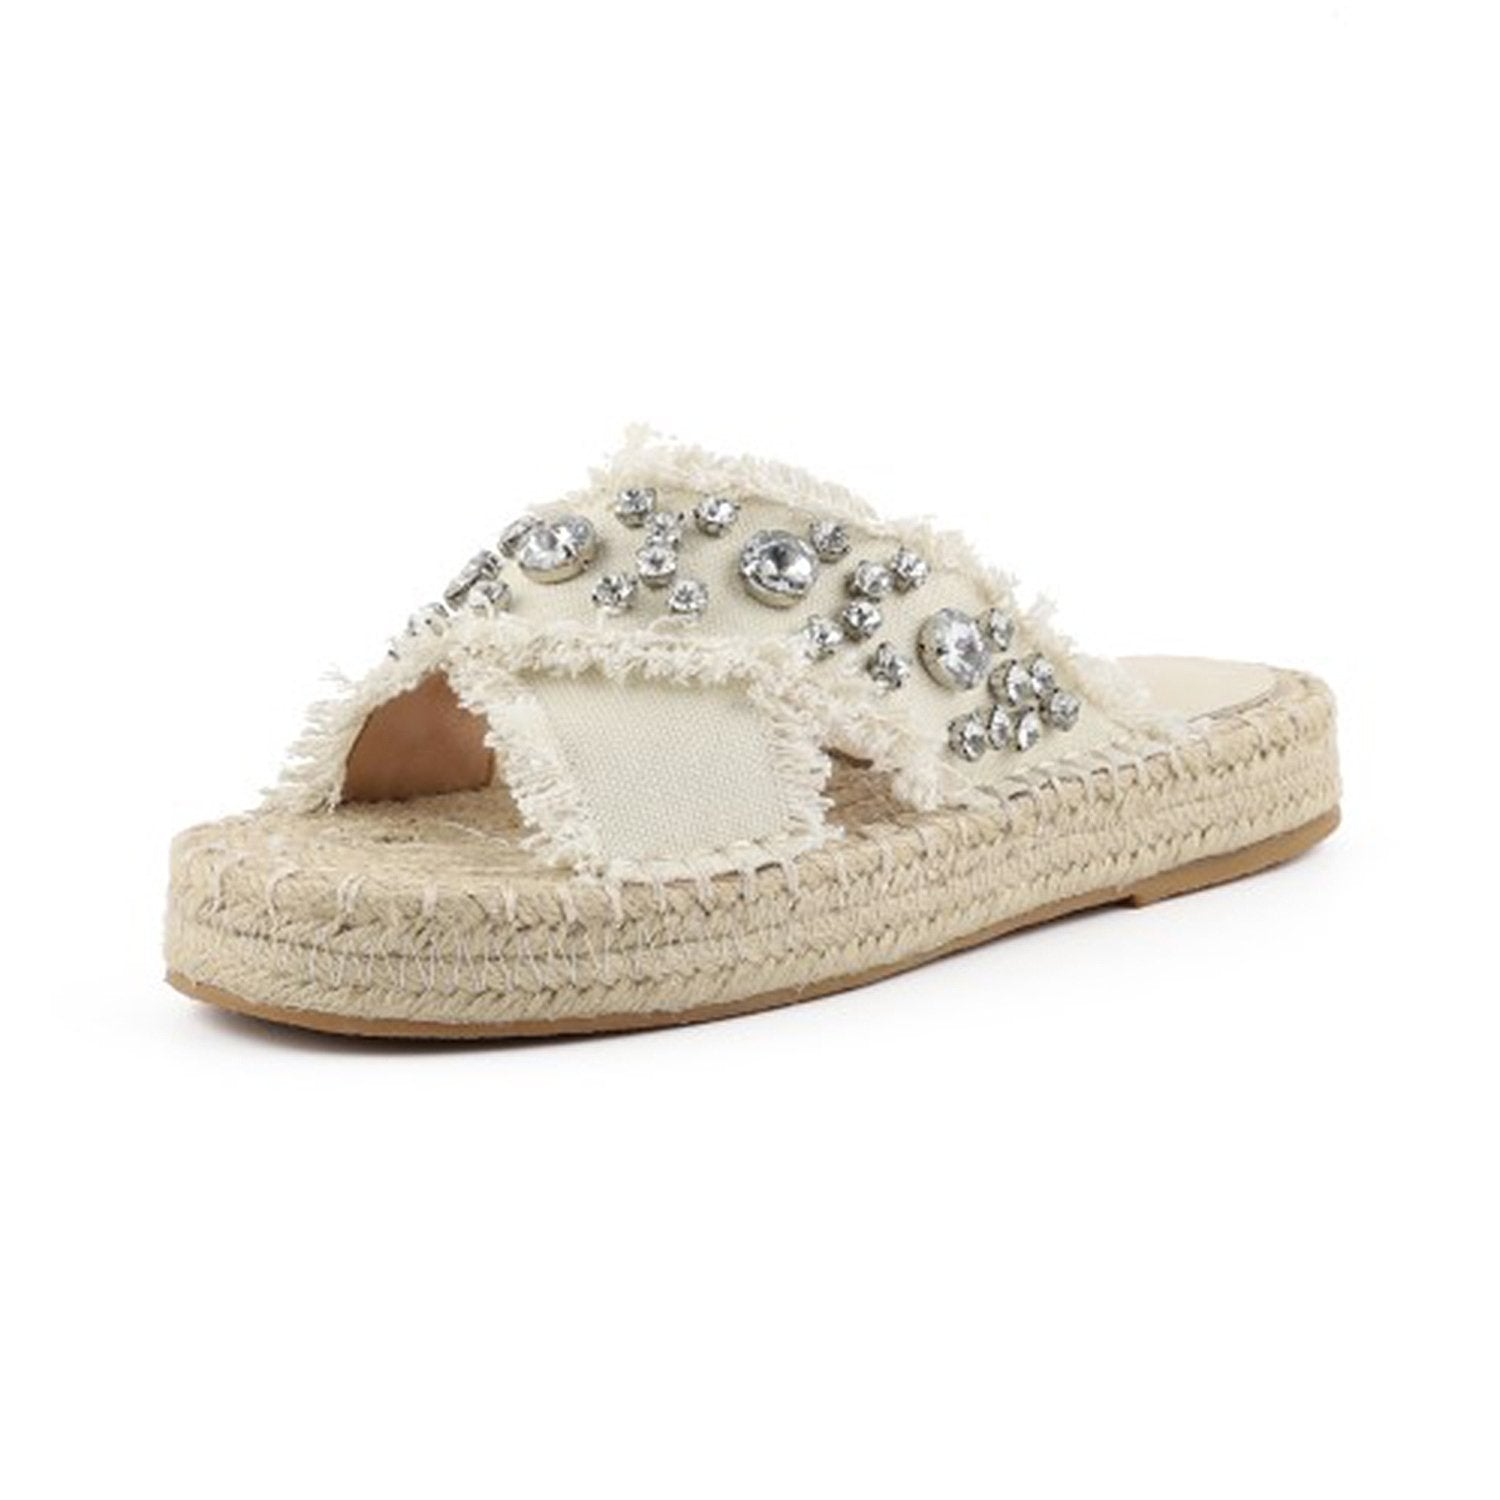 Slim Rhinestone Criss-cross Slides